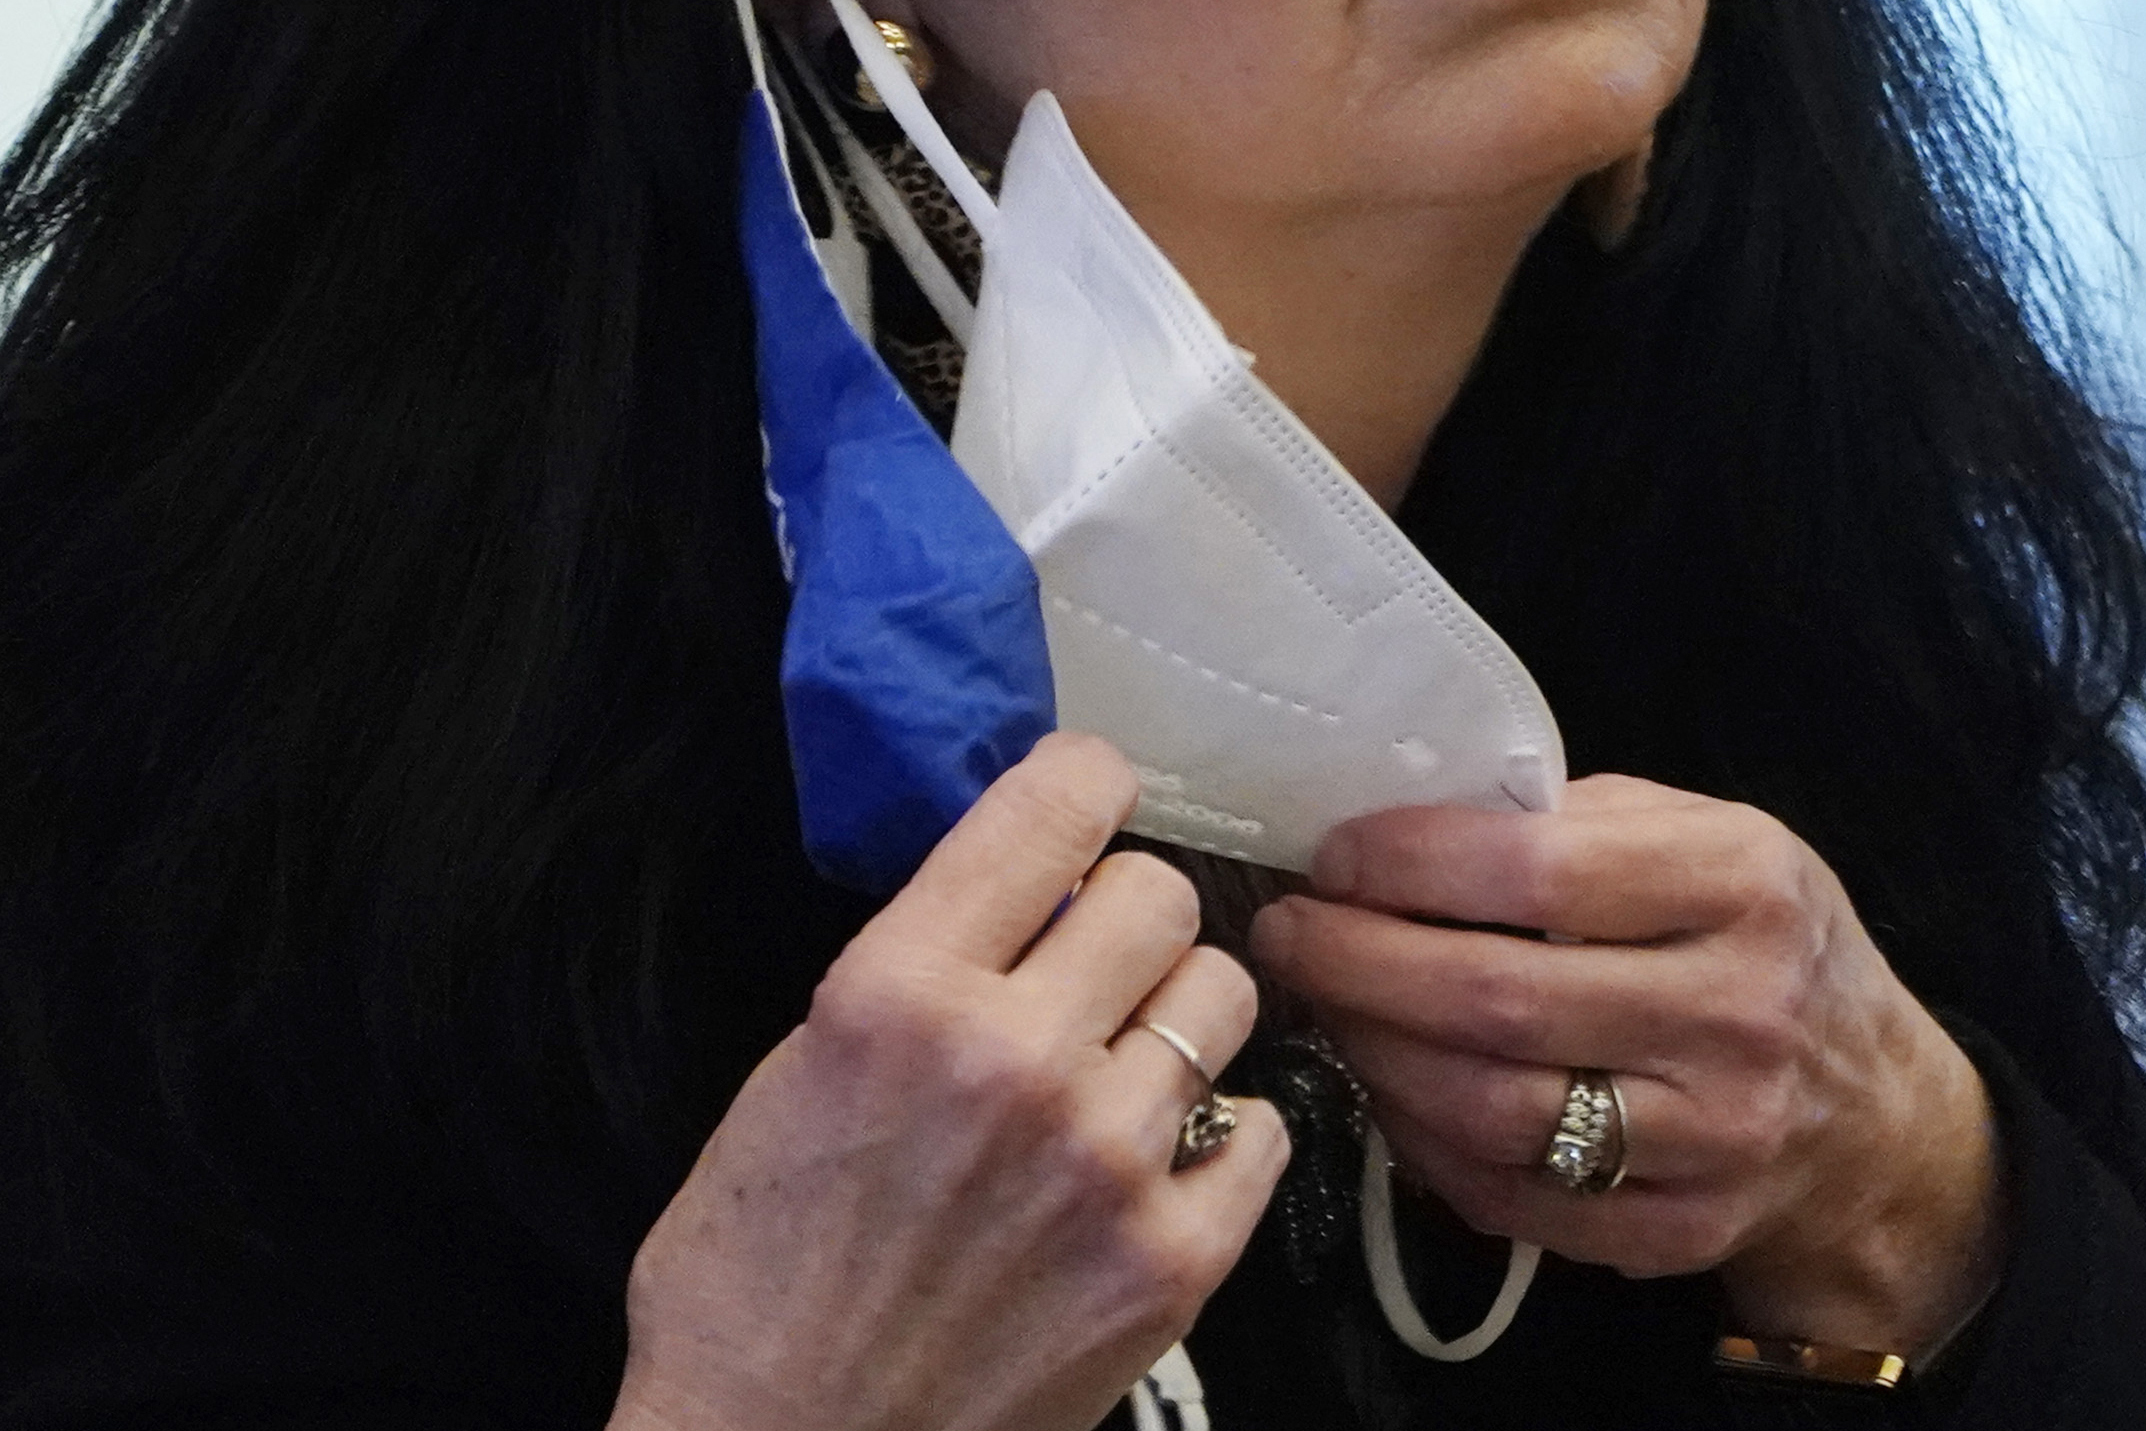 A state legislator adjusts her face masks while asking a question at the Capitol in Jackson, Miss., on Feb. 4, 2021. (Rogelio V. Solis / Associated Press)